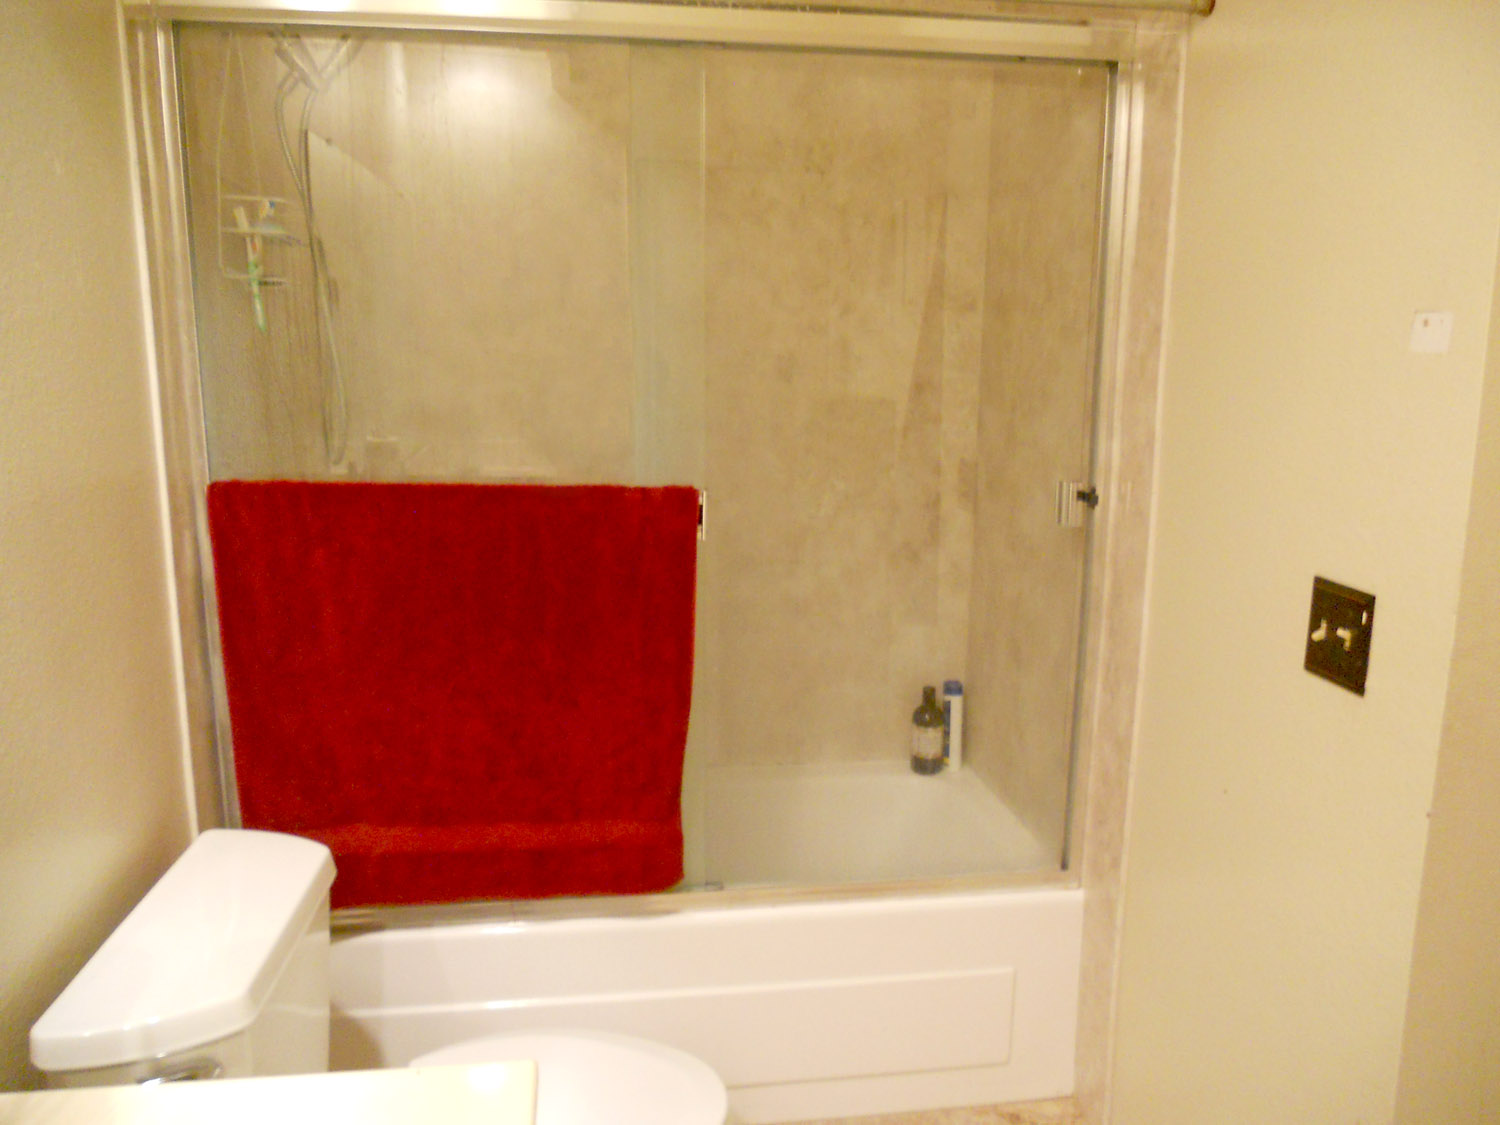 Upstairs hallway bathroom with enclosed tub/shower combo.